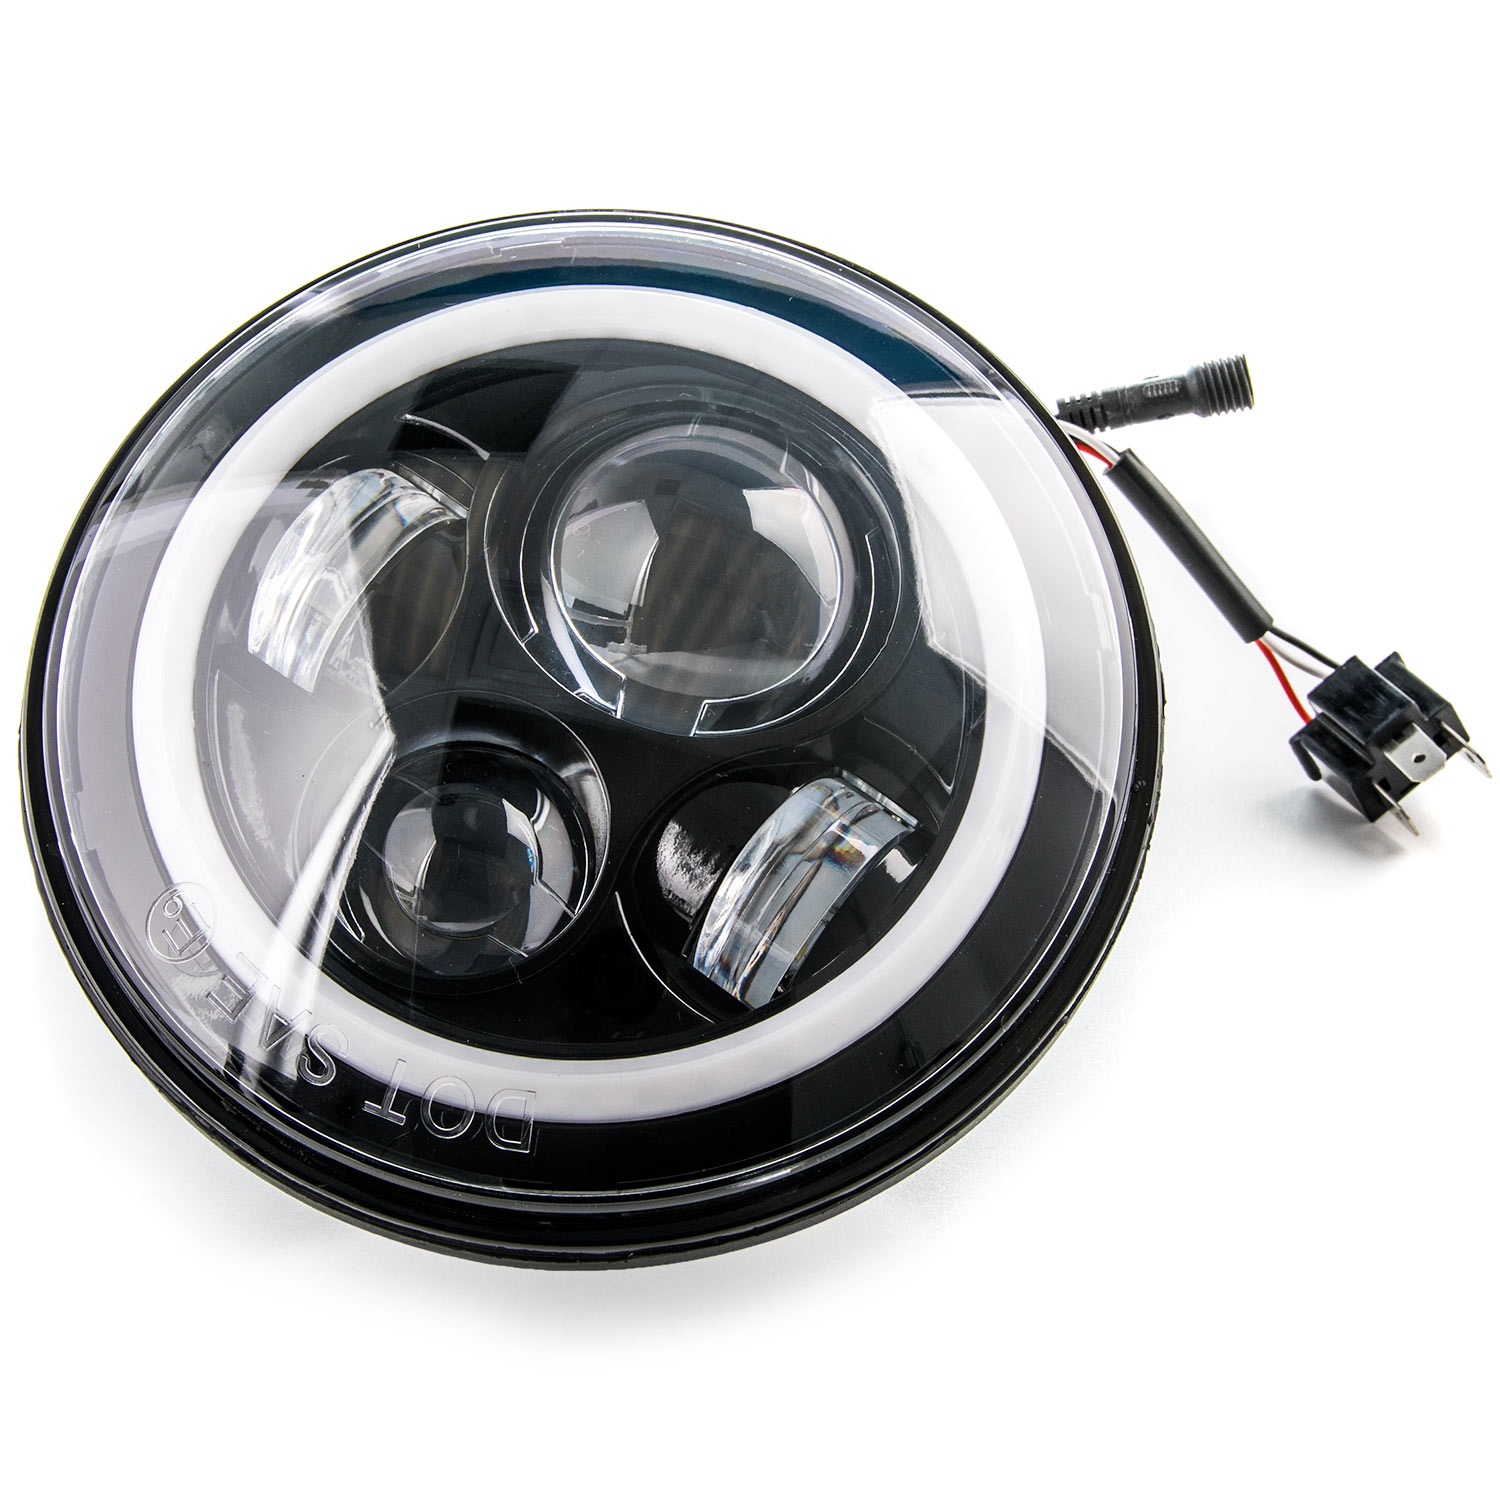 Led 7 Headlight Bluetooth Rgb Halo Ring Light For Harley Davidson 07 Jeep Wr Angler Wiring Motorcycles 2007 2016 Wrangler Unlimited 4 Door Jk Requires 2 Headlights